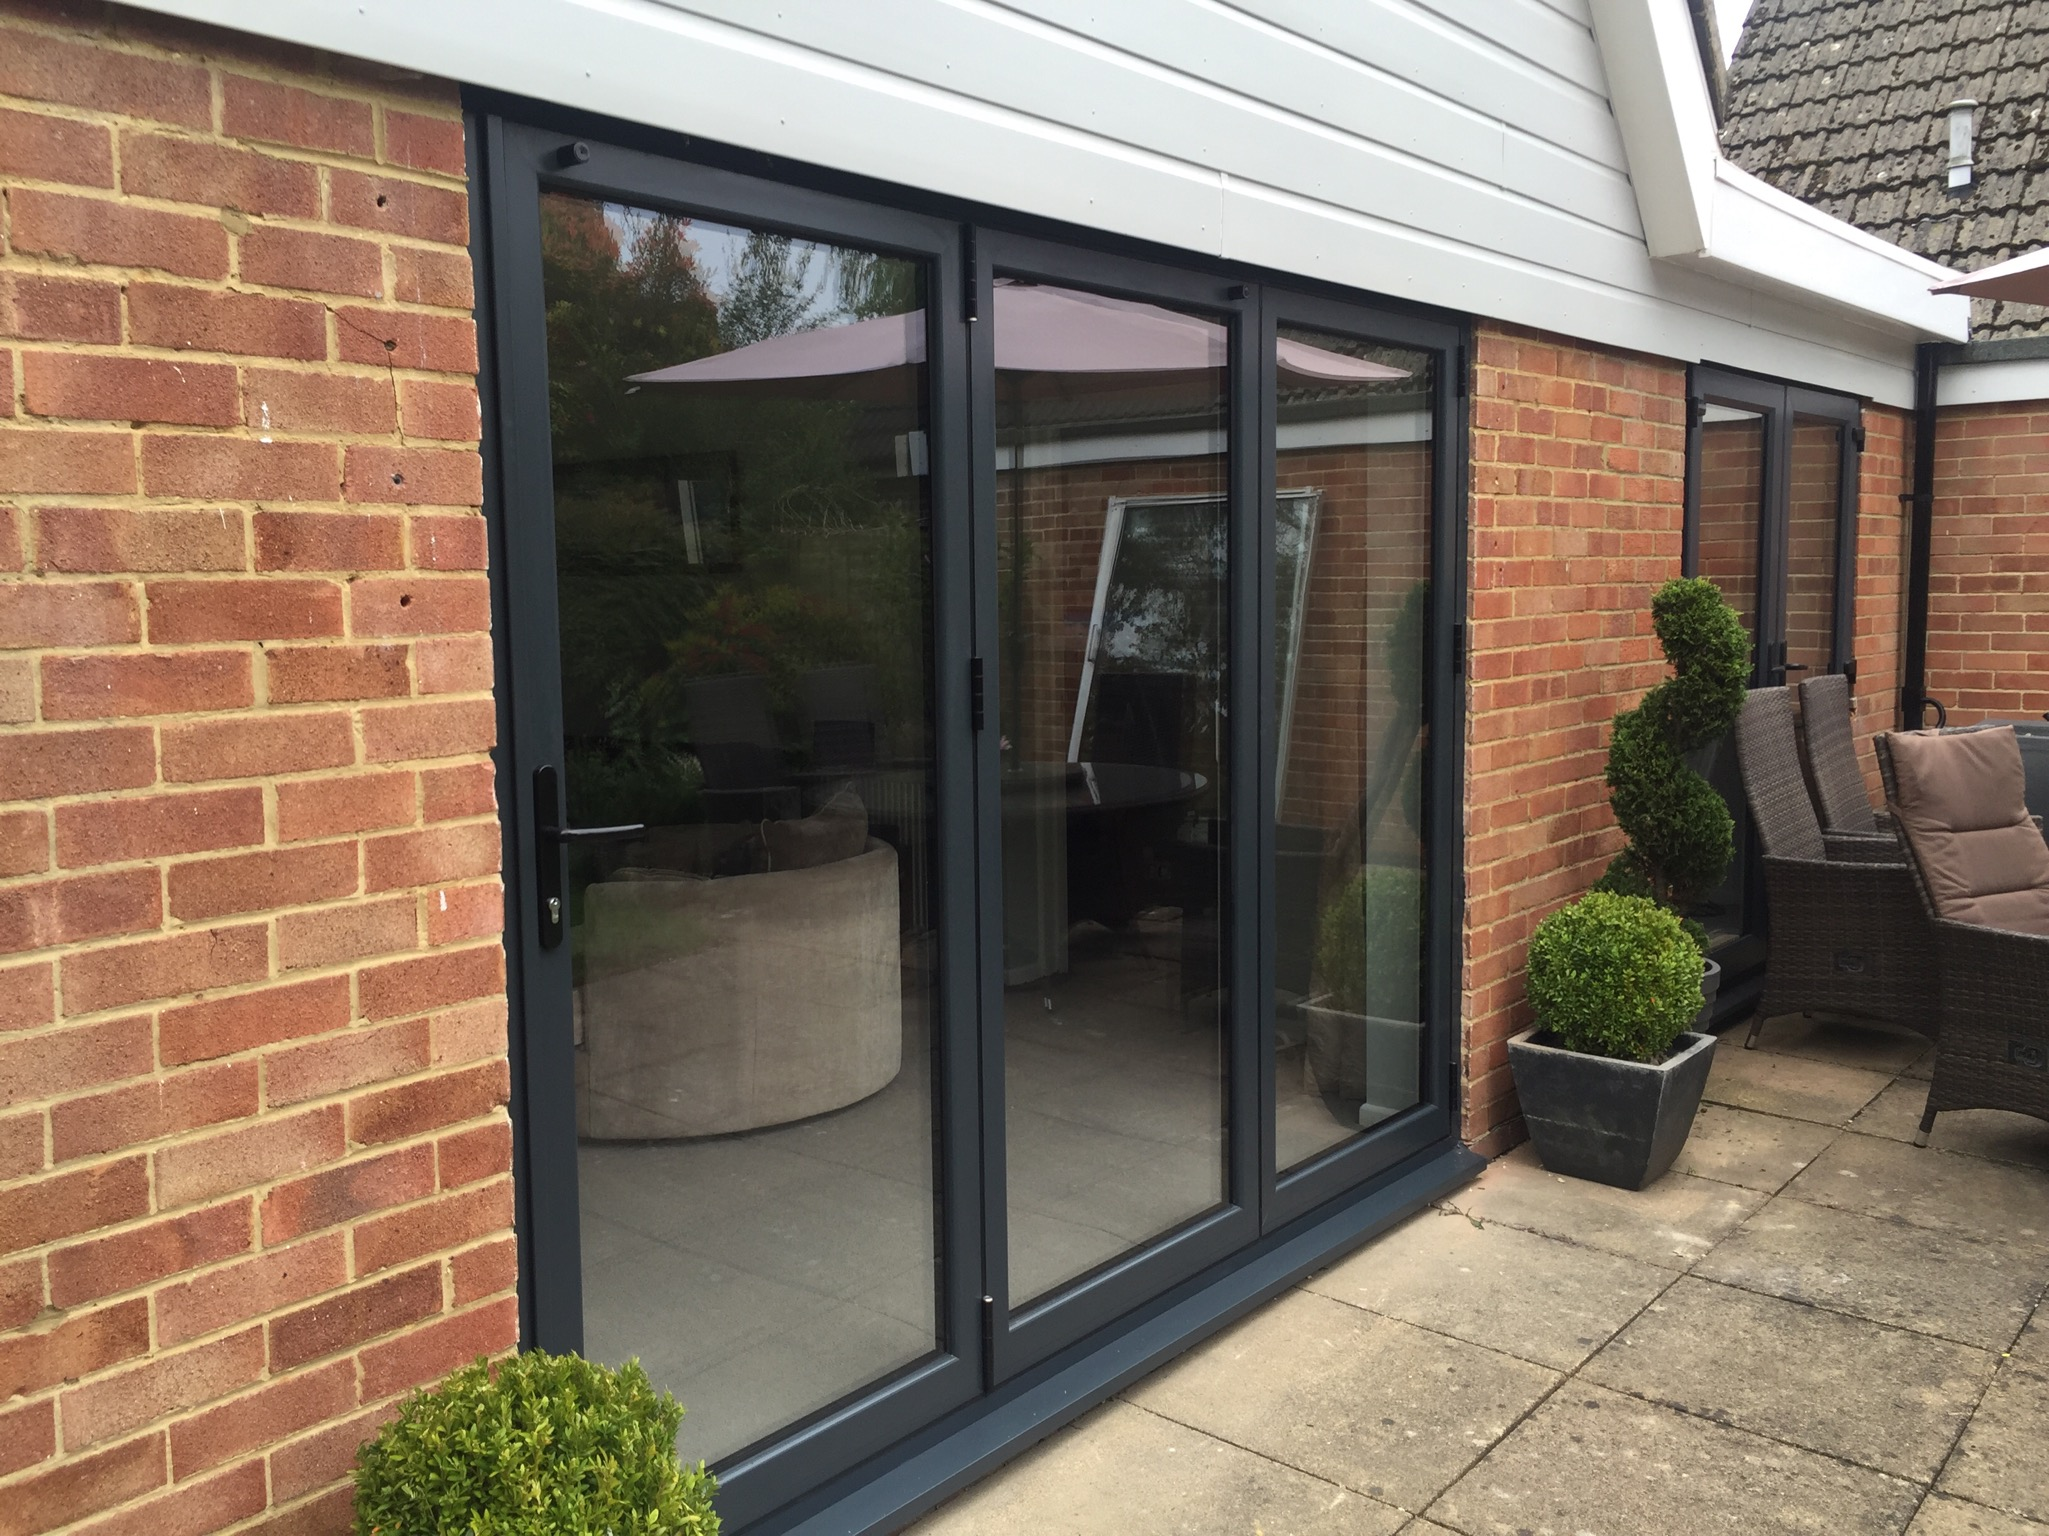 bifold door,   Guildford, Fleet, Farnham, Hook, Old Basing, Basingstoke, Oakley, Winchester, Sandhurst, Staines, Epsom, Leatherhead, Send, Woking, Wimbledon, High Wycombe, Crowthorne, Addlestone, Godalming, Aldershot, Bentley, Dorney, Burnham Common, Wokingham, Newbury, Oxford, Marlow, Basingstoke, Andover, Winchester, Romsey, Bordon, Yateley, Wasing, Reading, Chieveley, Burleigh, Barkham, Hurst, Lightwater, Windlesham, Wentworth, Sunningdale, Windsor, Chobham, Chertsey, Chilworth,